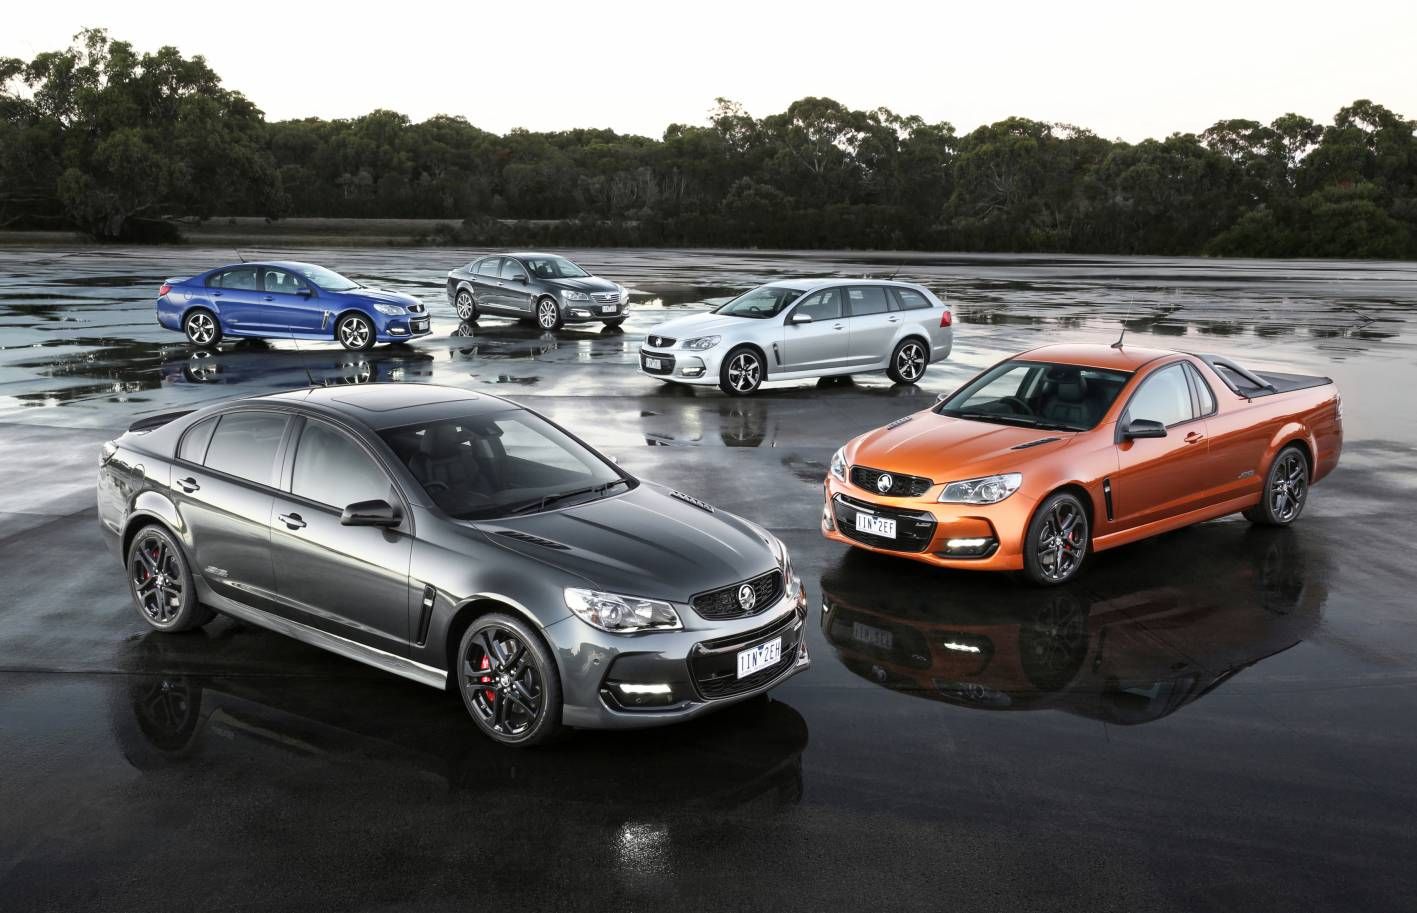 With the imminent death of the local Commodore, Holden's reputation has already taken a massive hit. Now the ACCC reveals Holden's customer treatment is among the car industry's worst